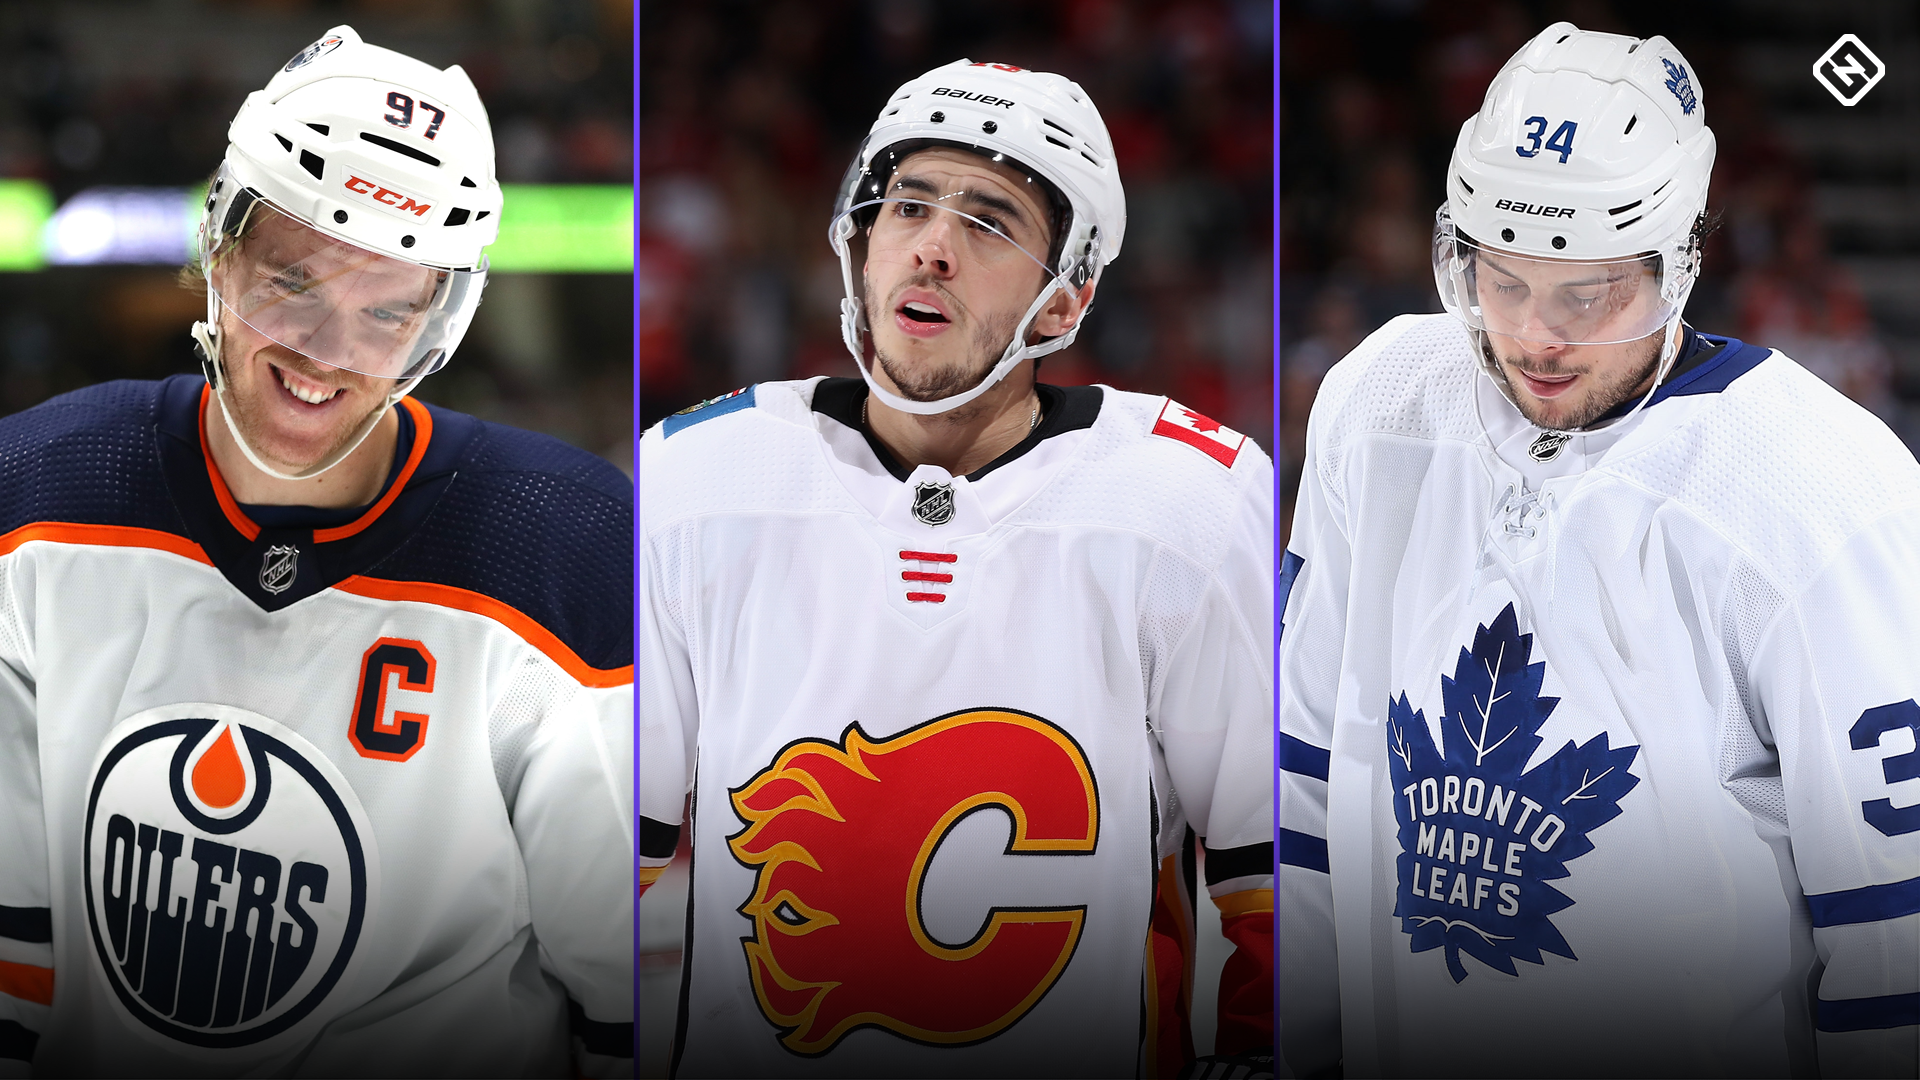 NHL power rankings: The good (Oilers), bad (Flames) and ugly from Canada's teams so far in 2019-20